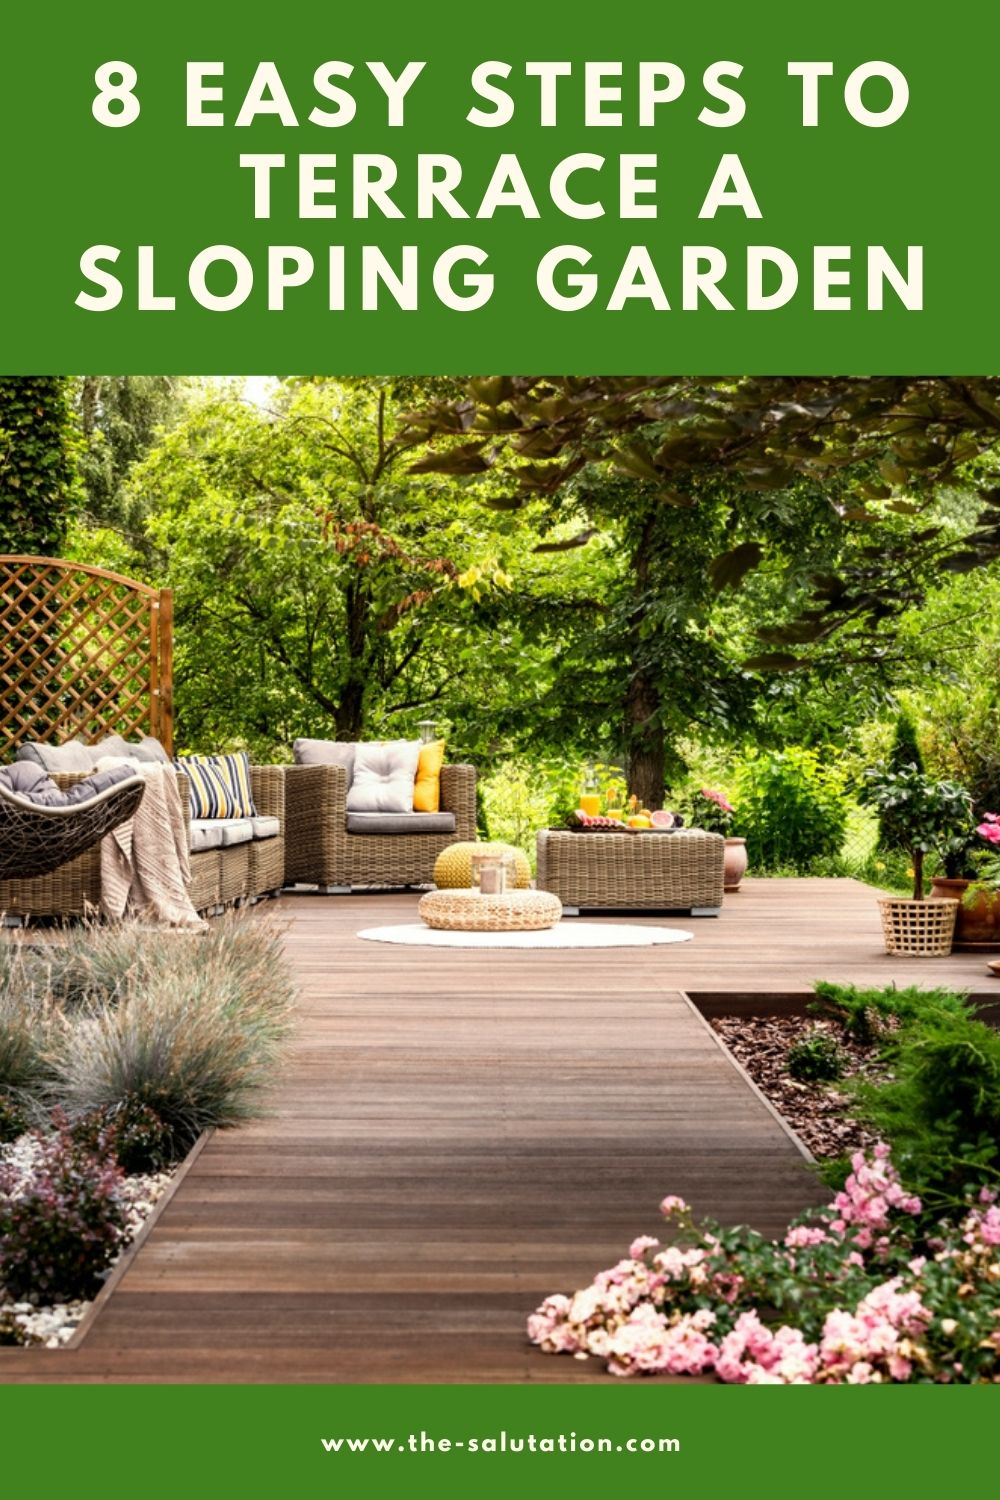 8 Easy Steps to Terrace a Sloping Garden 1